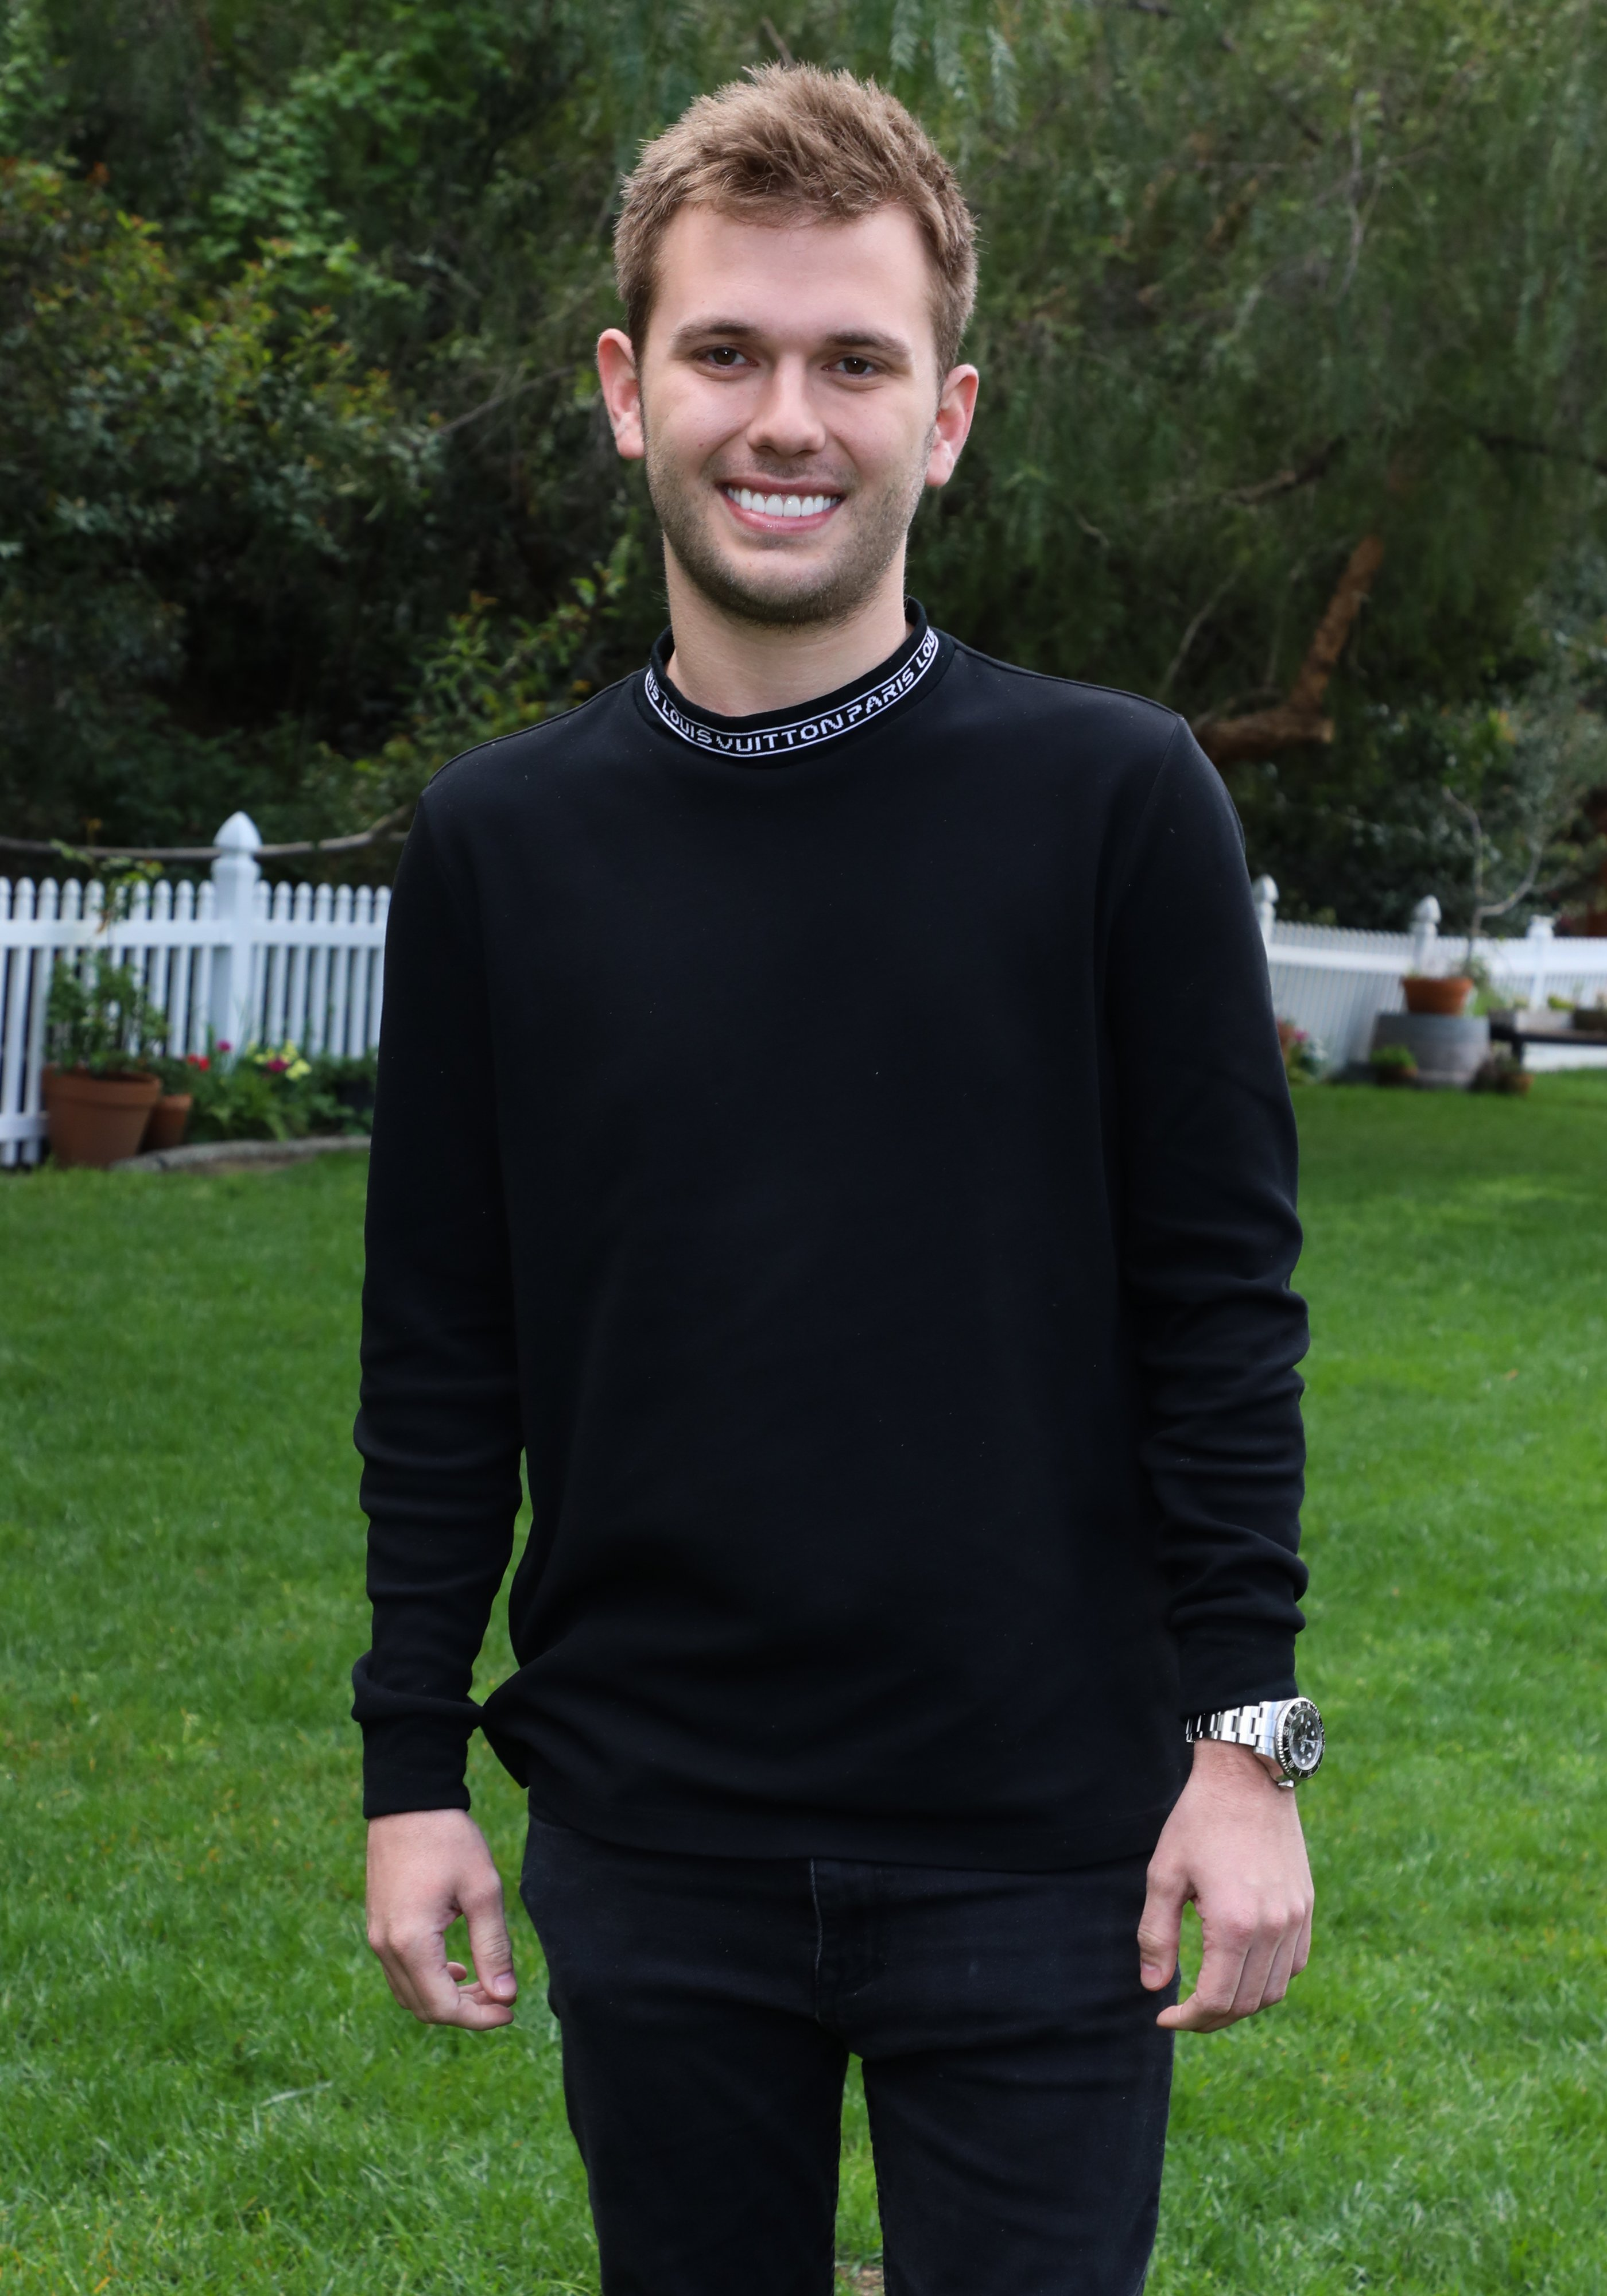 """Chase Chrisley visits """"Home & Family"""" at Universal Studios in Universal City, California on March 27, 2019 